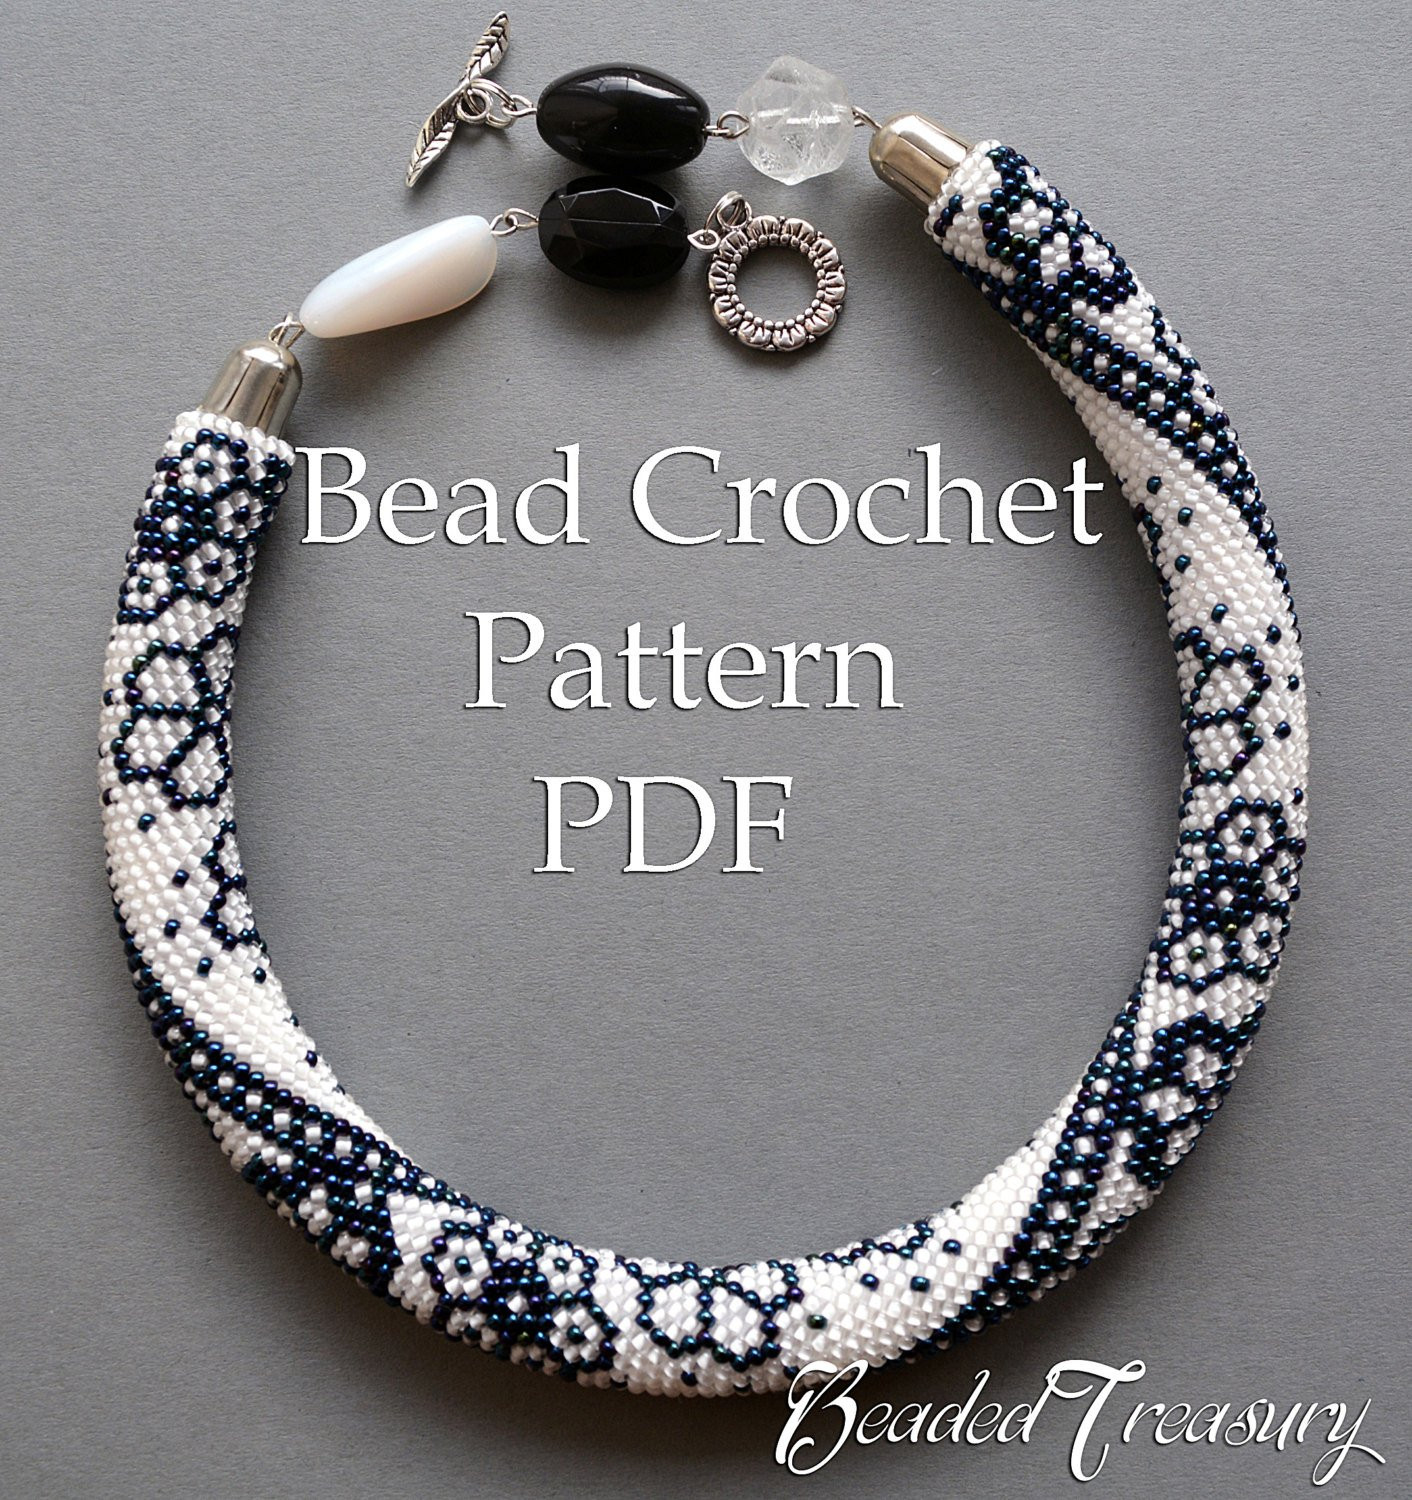 Awesome Winter Lace Bead Crochet Pattern Beaded Flowers Necklace Seed Bead Crochet Patterns Of Perfect 48 Pictures Bead Crochet Patterns